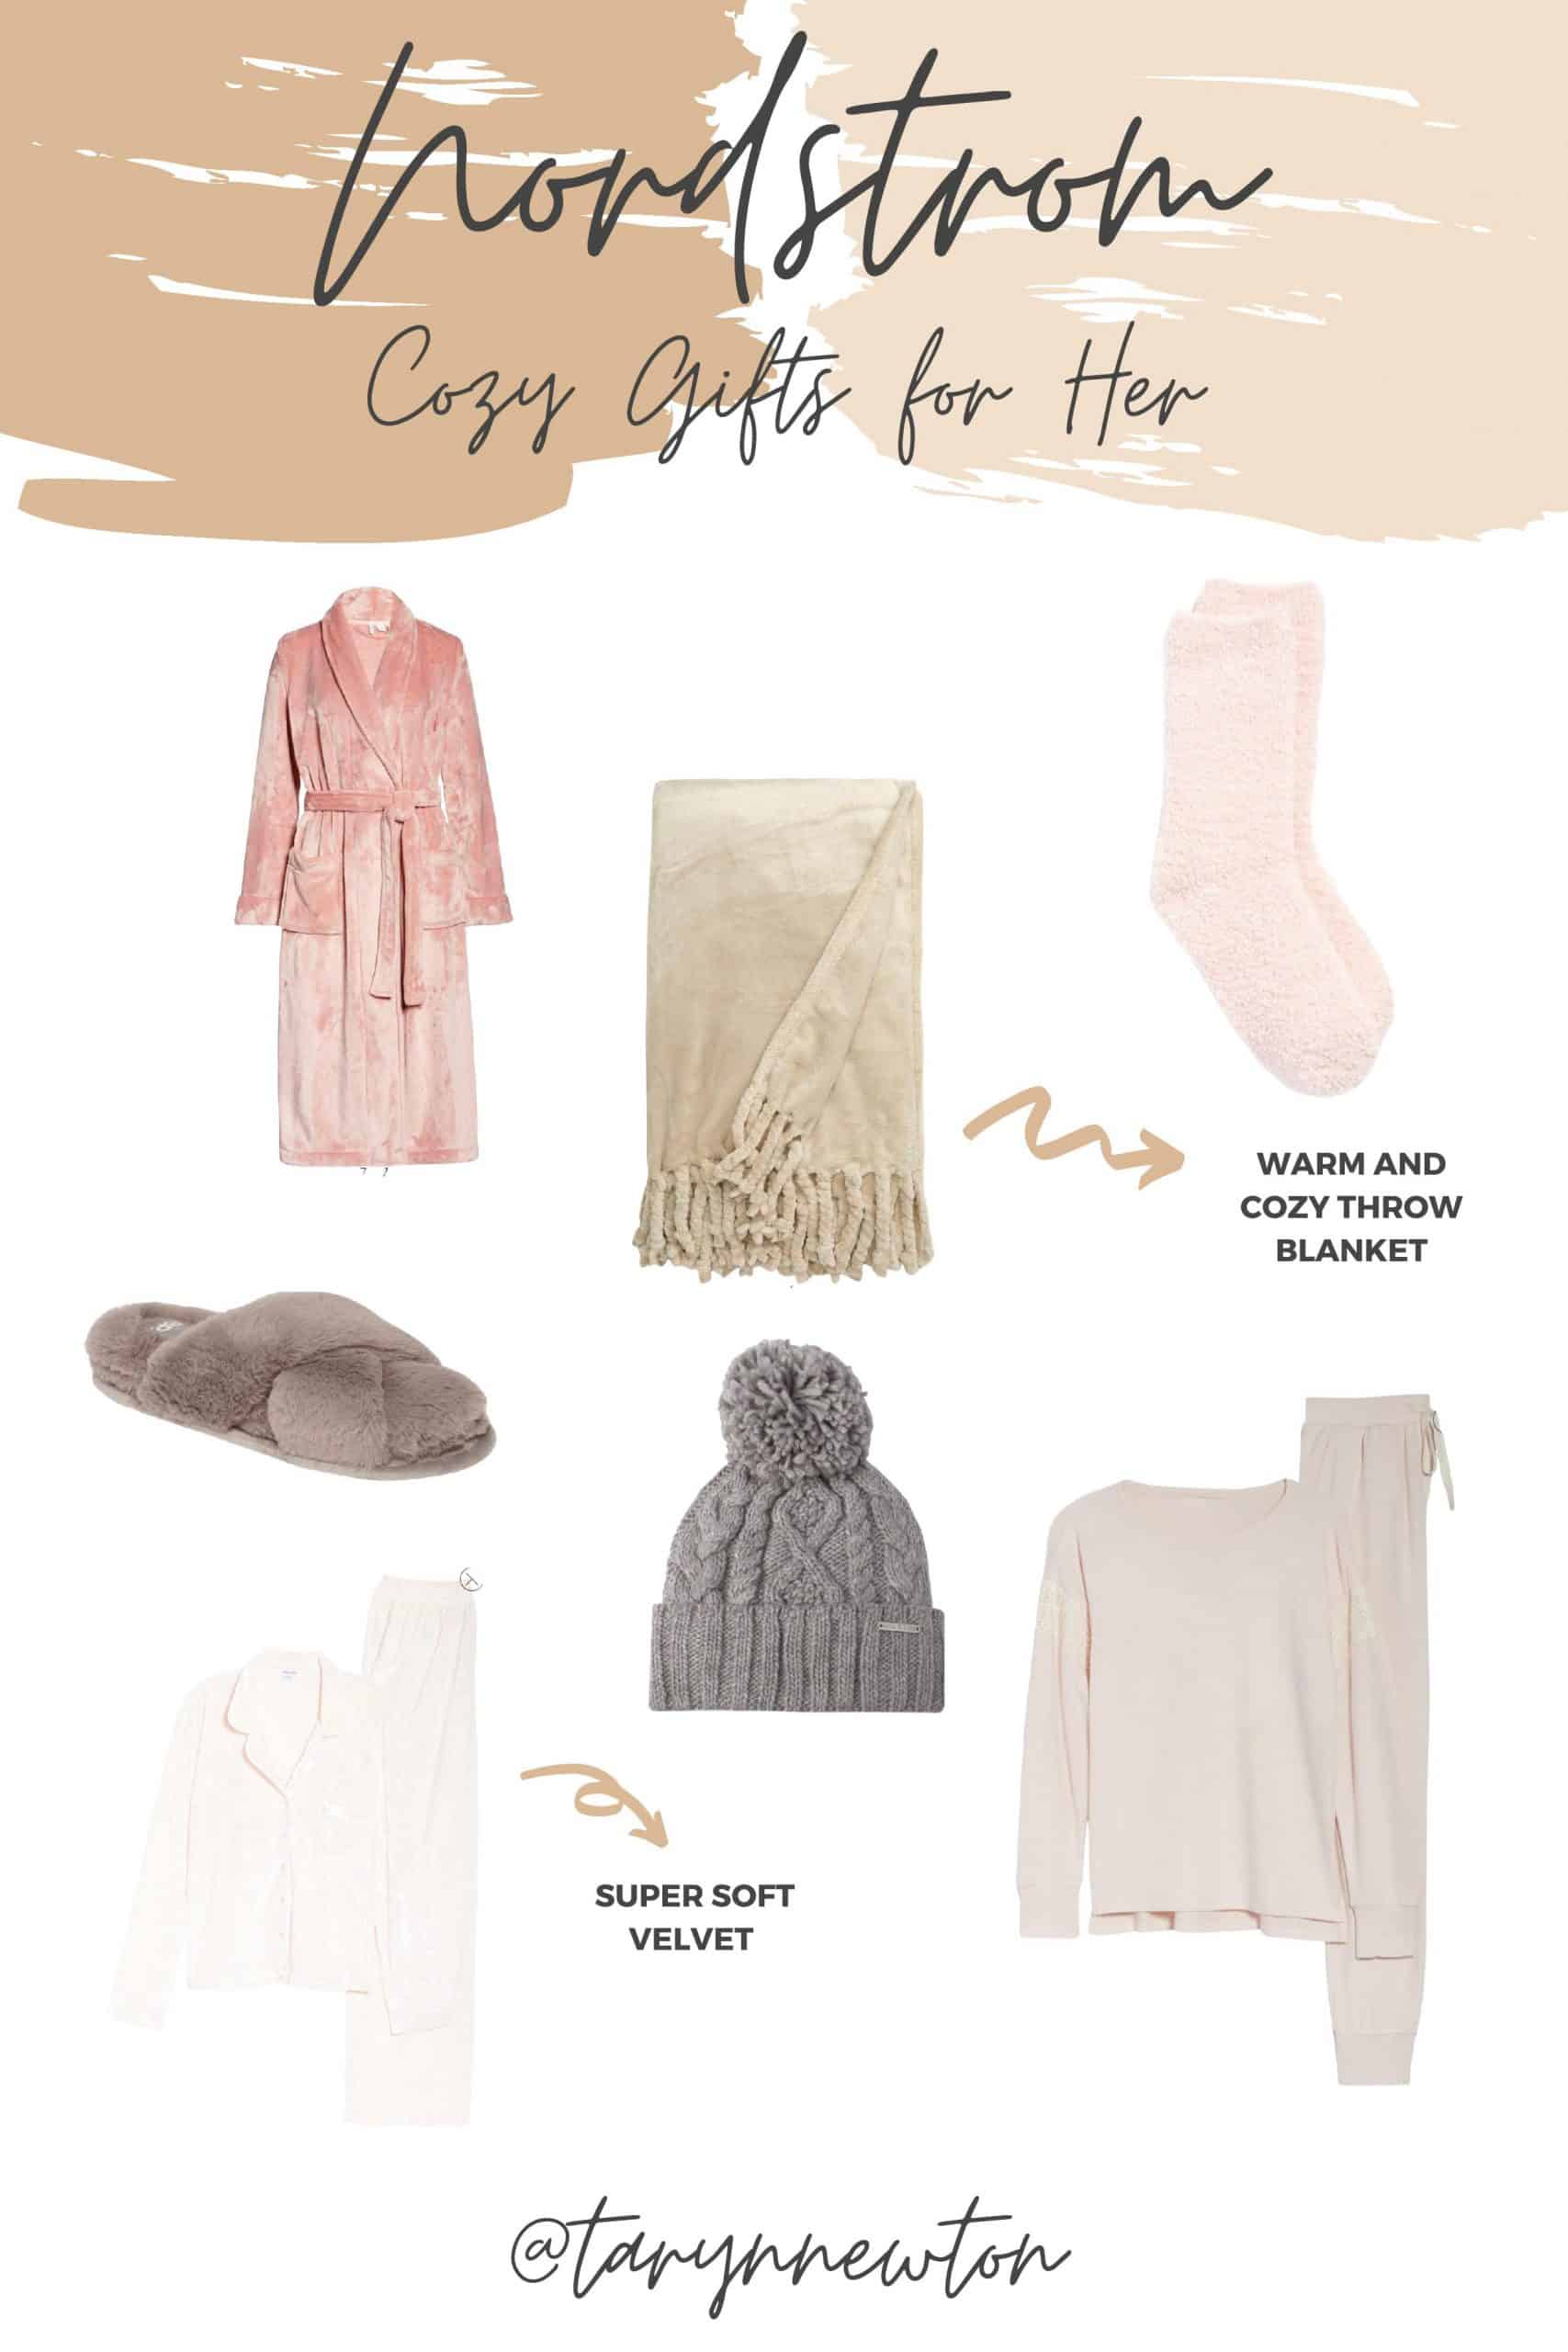 Cozy Gifts by popular Dallas life and style blog, Glamorous Versatility: collage image of a Sophie Criss Plush Slippers, Bliss Plush Robe, Alexandra Brushed Knit Pajamas, Crushed Velvet Pajamas, Butter Crew Socks, and Bliss Plush Throw Blanket.